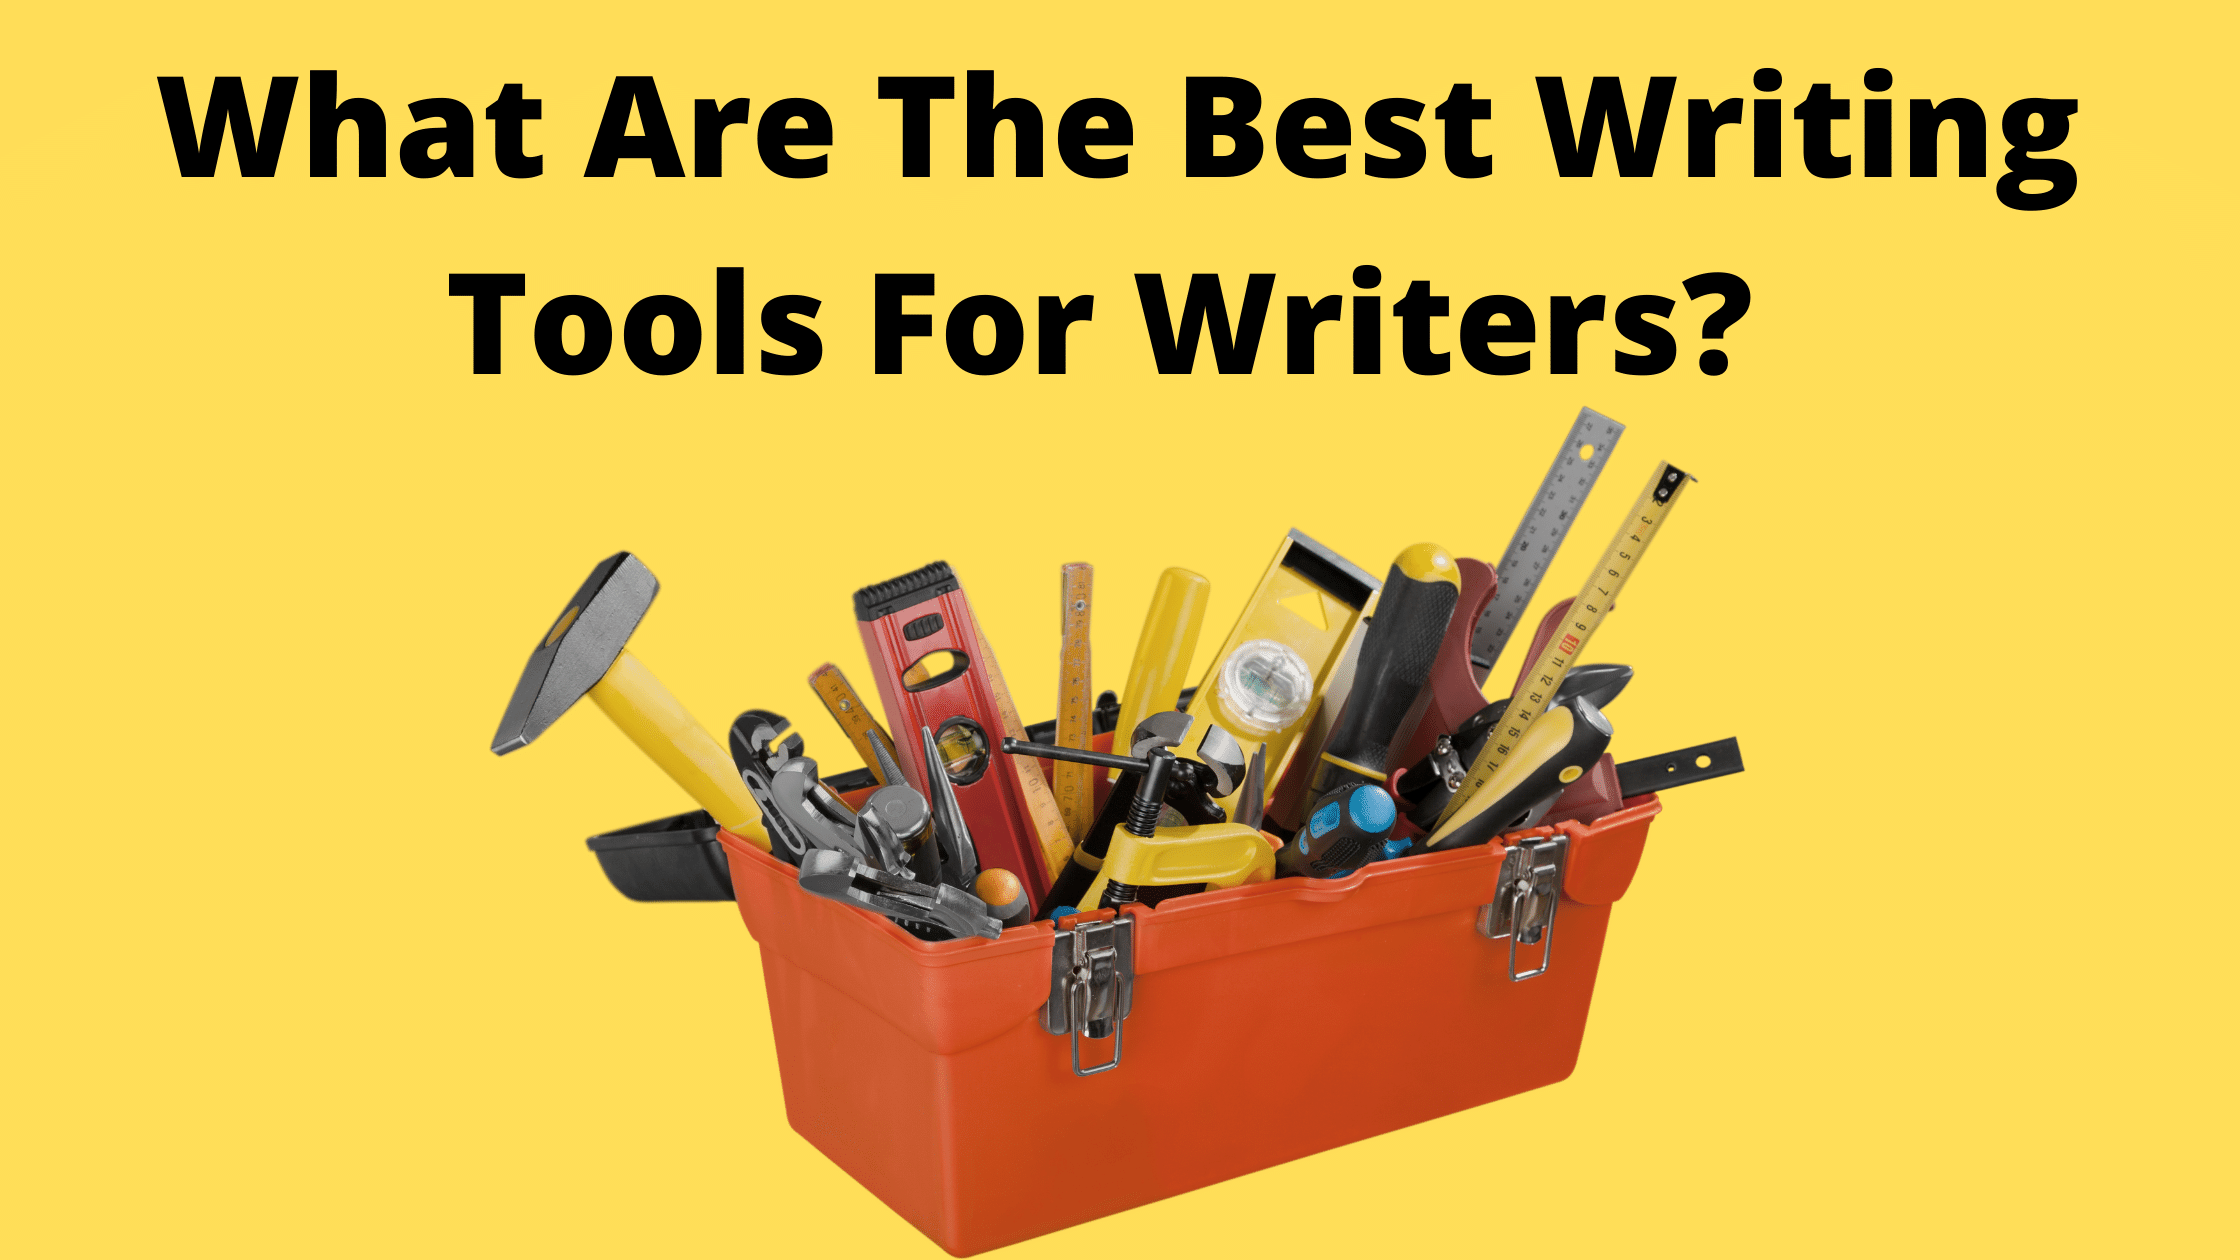 What Are The Best Writing Tools For Writers in 2021?